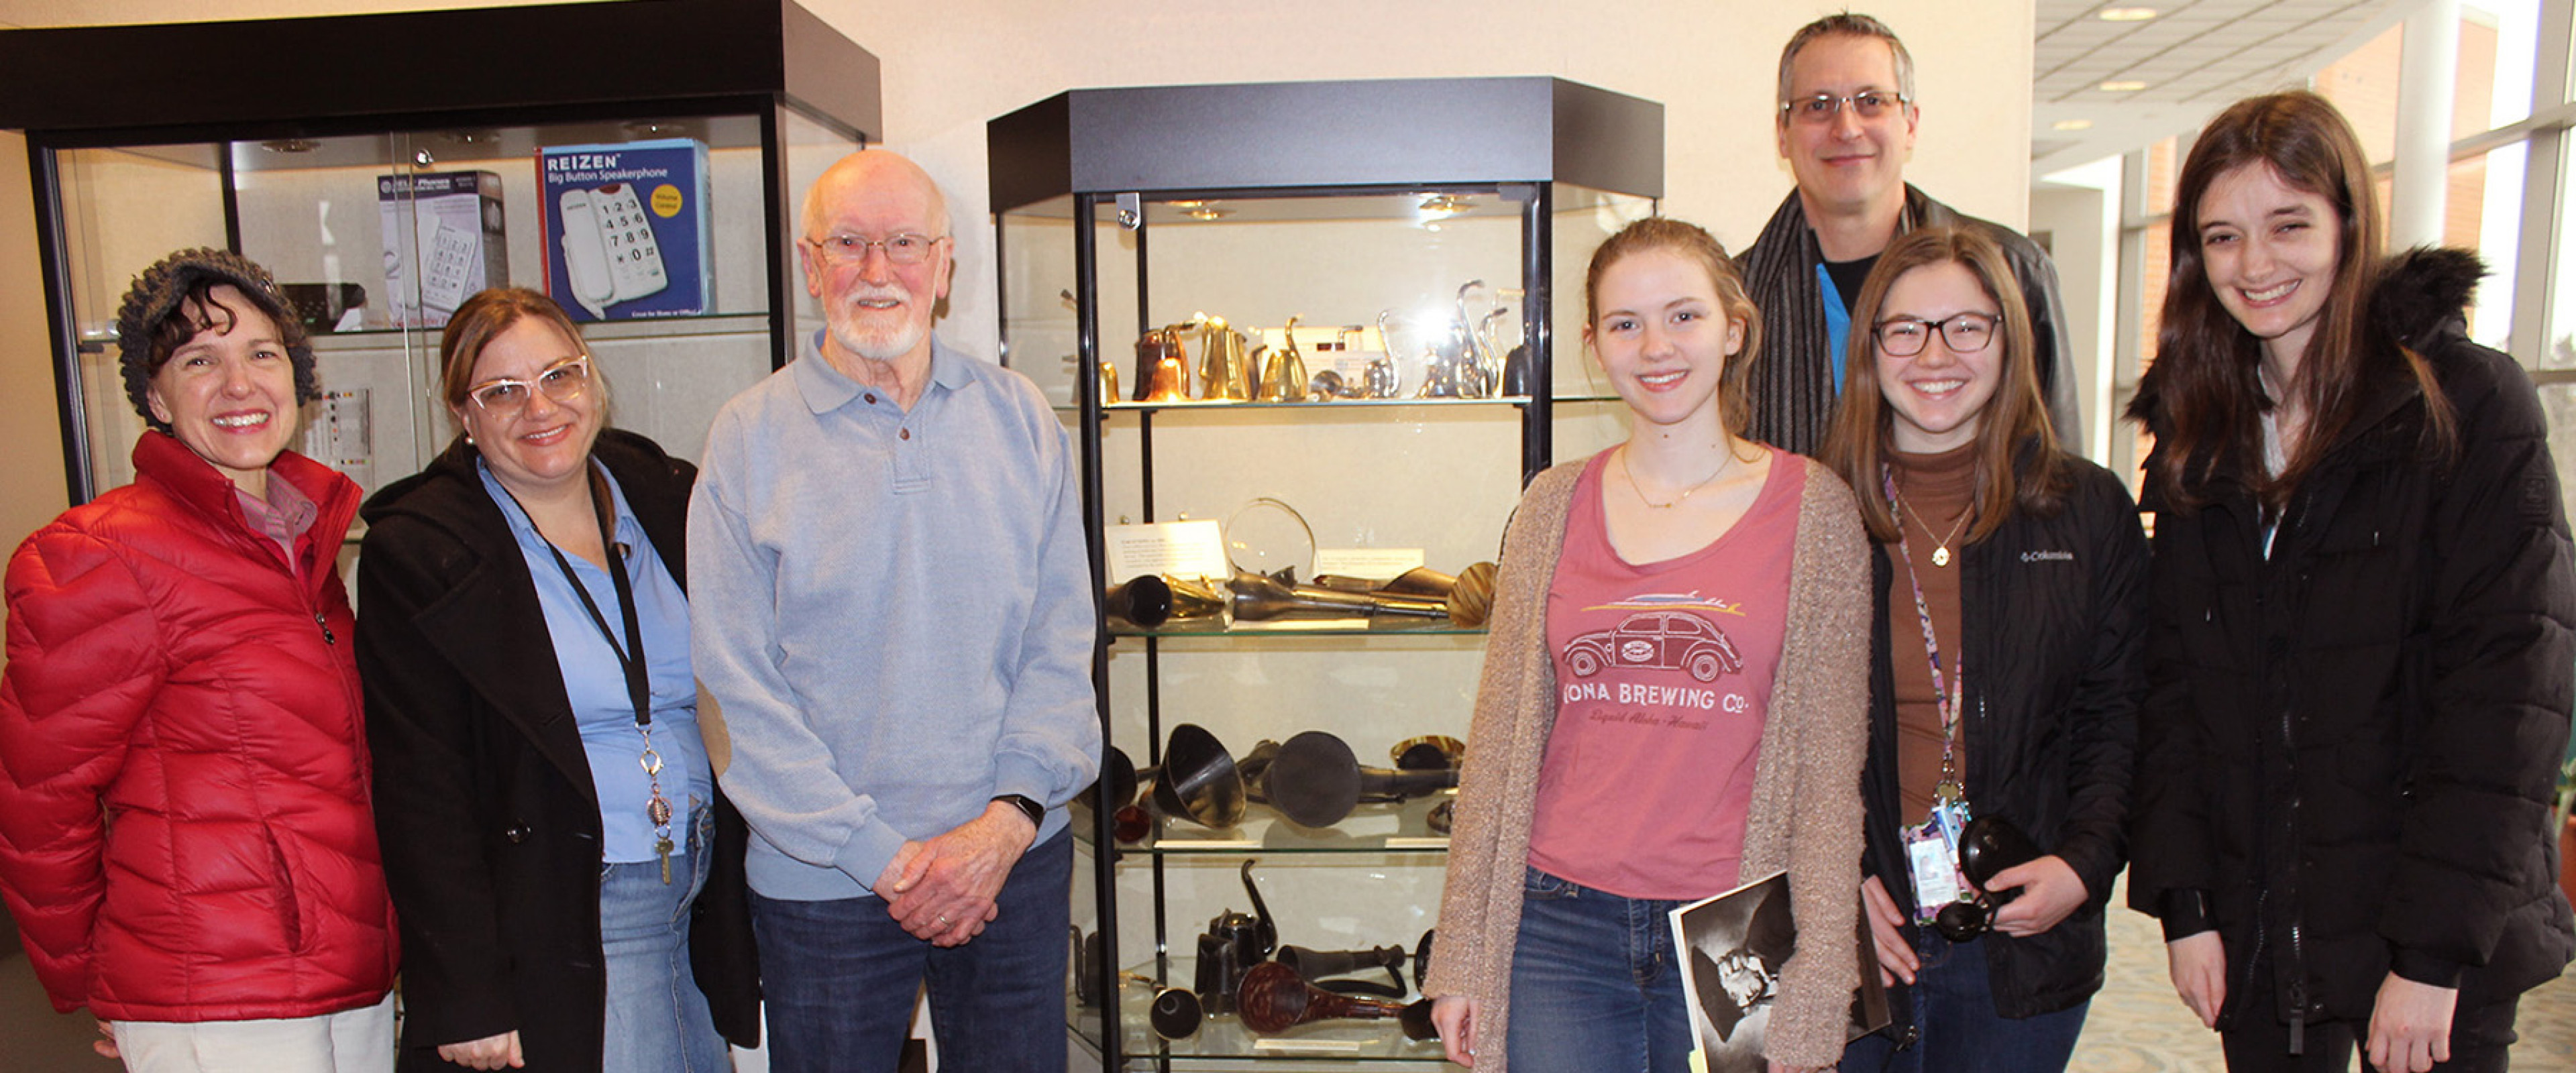 Students and community at hearing aid collection